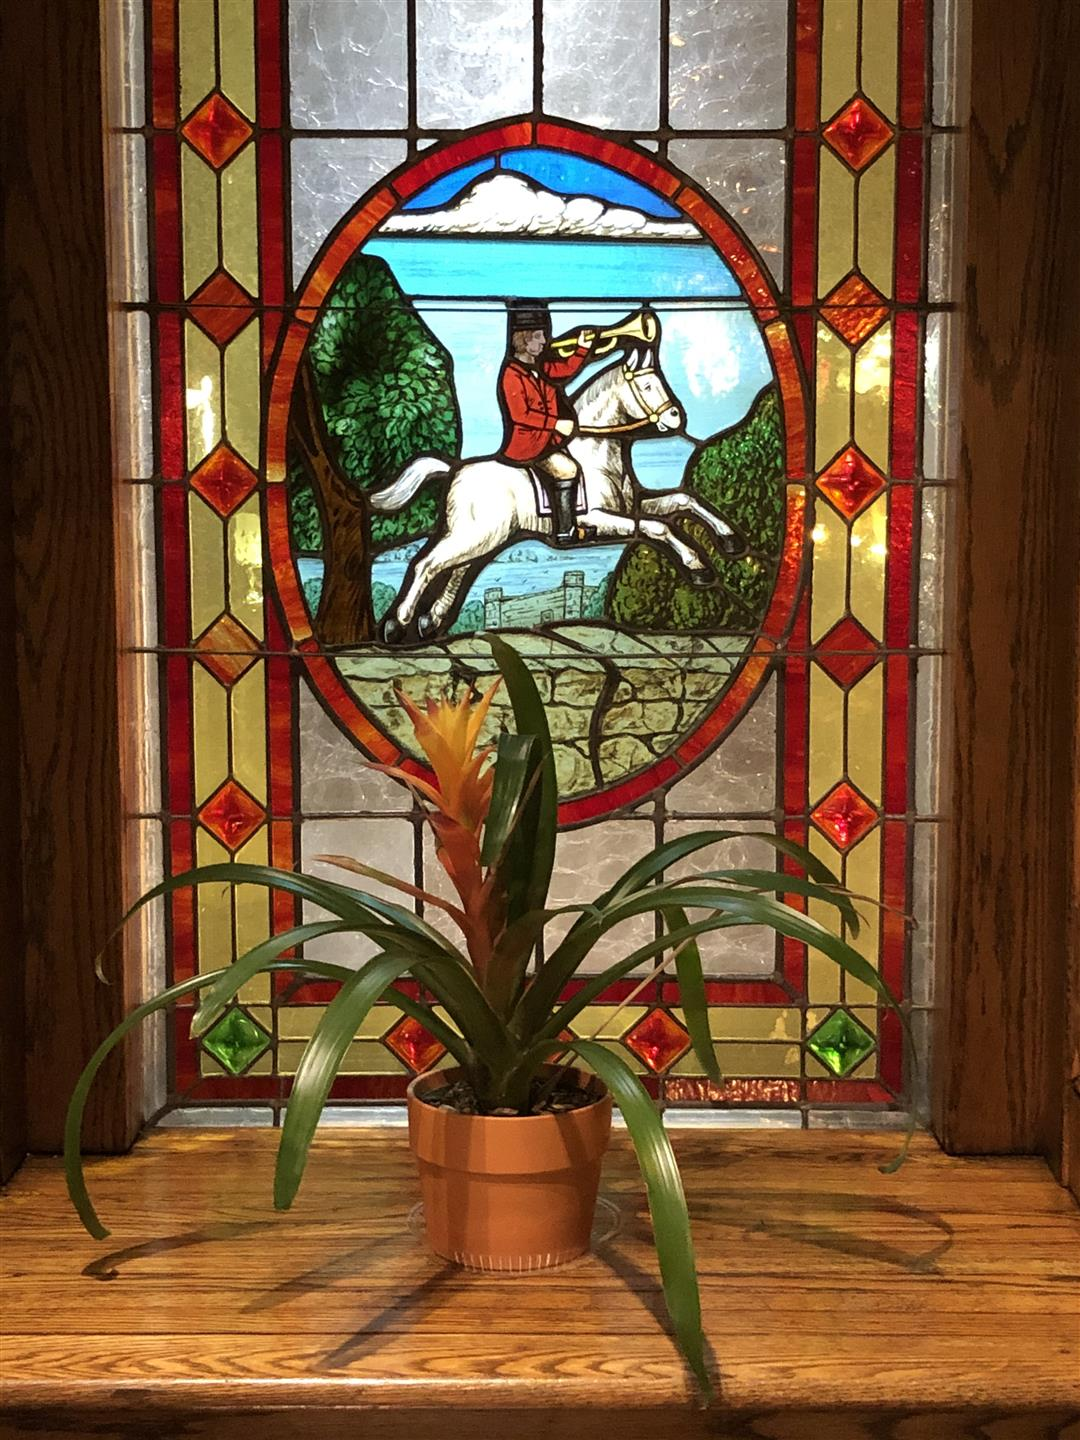 stained glass windows with a man riding a horse